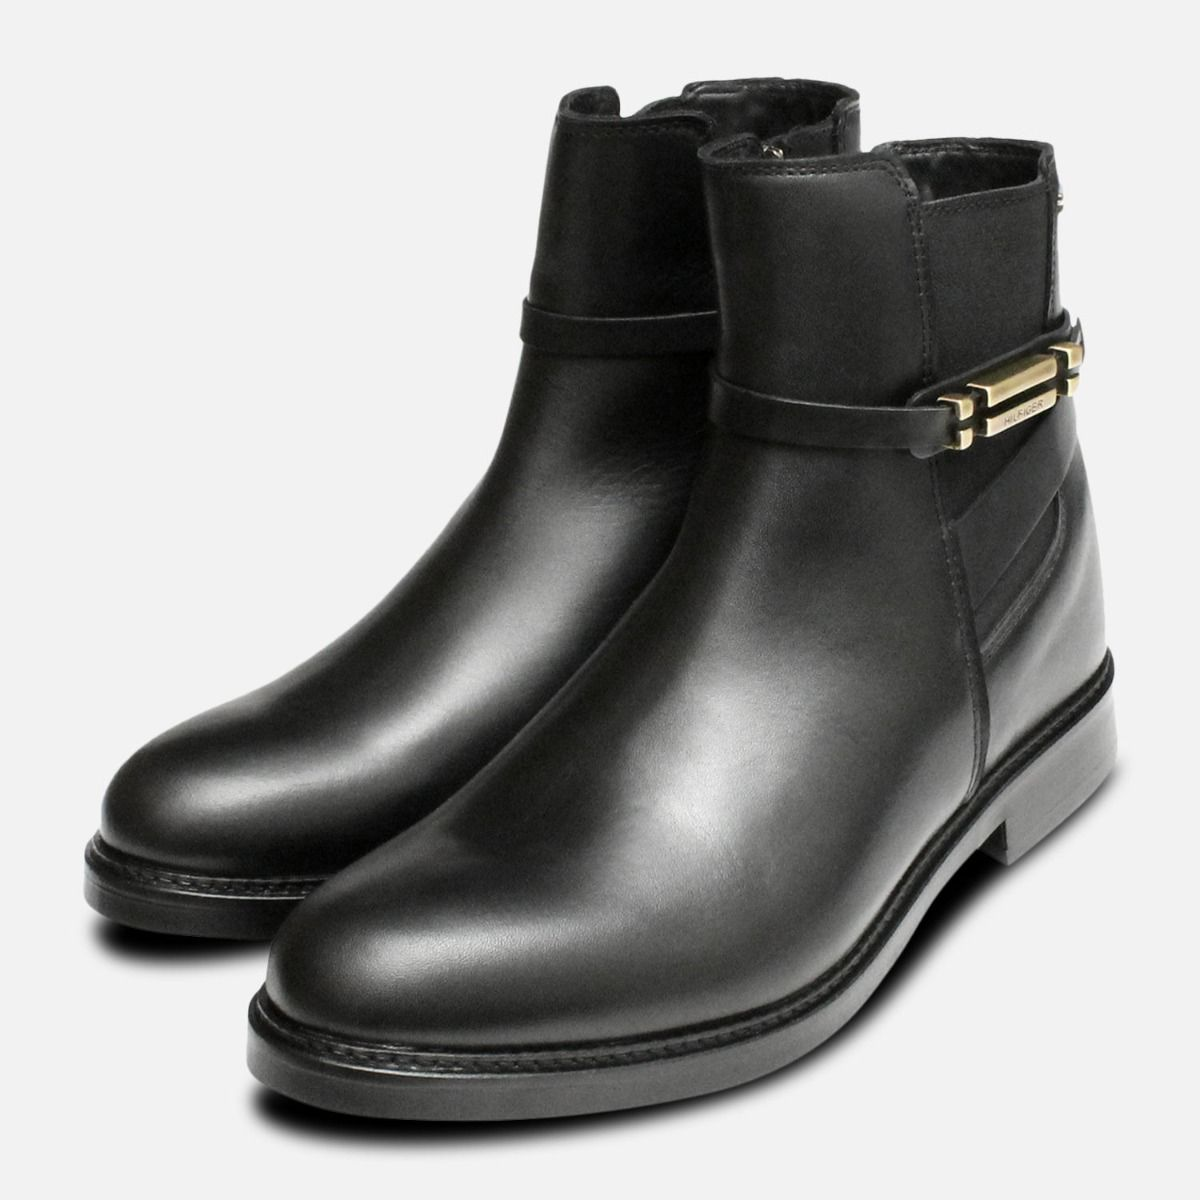 2663cdce2 Waterproof Tommy Hilfiger Black Holly Chelsea Boots